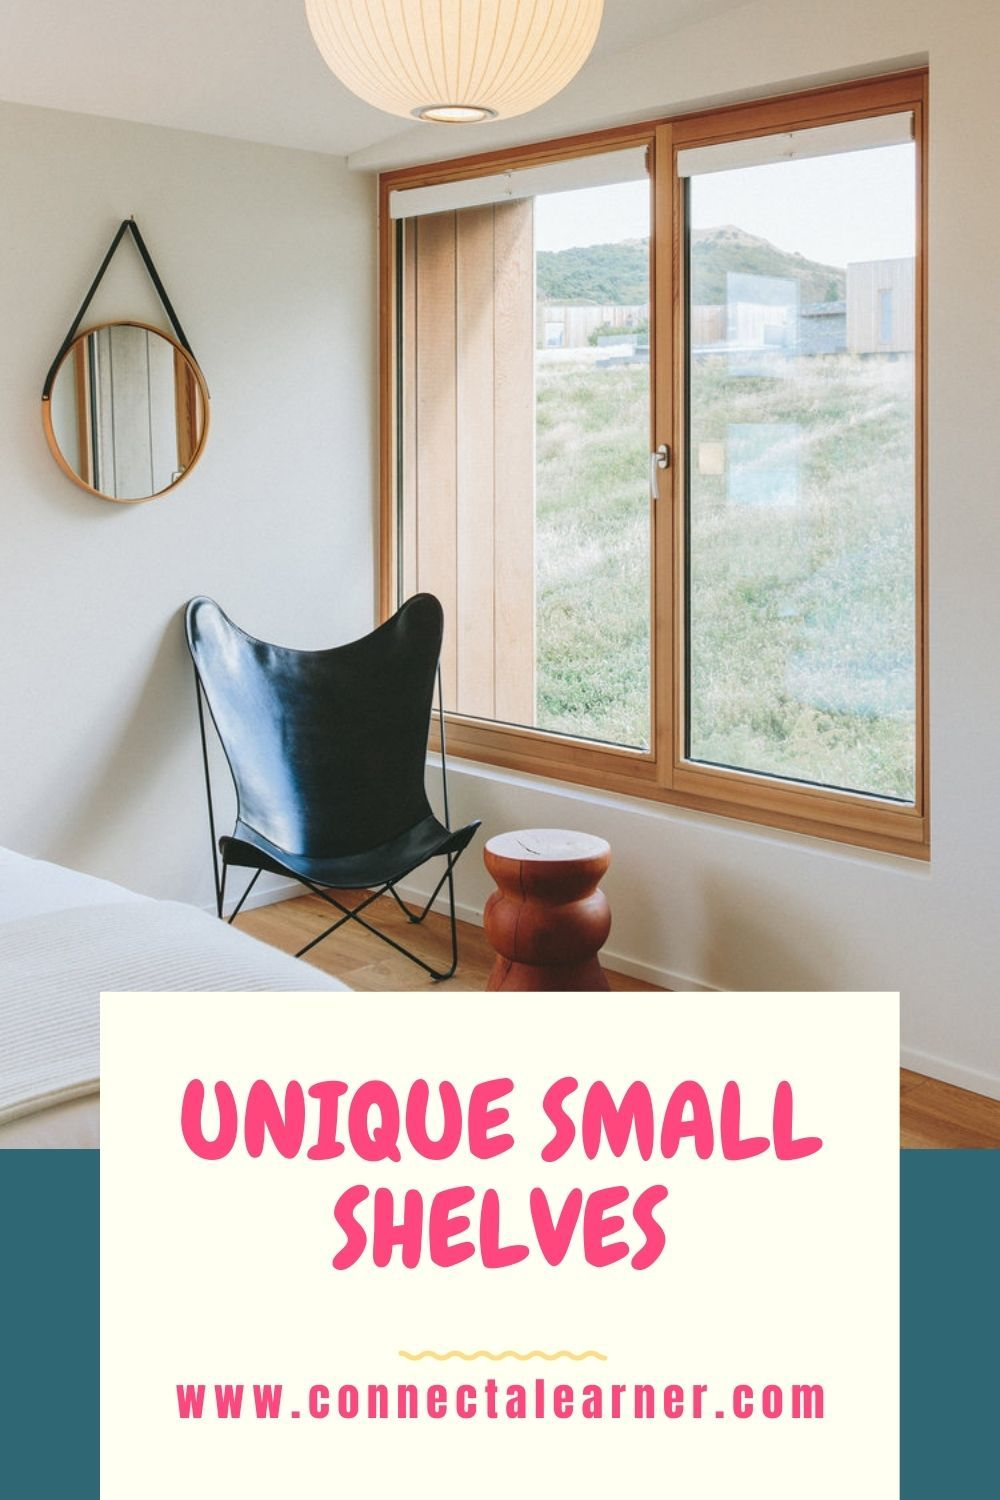 Shelving is essential for keeping a home organized, and small shelves allow you to showcase your favorite objects #Roomdecor #housedecoration #DecorationIdeas room_decor_ideas #Shelf